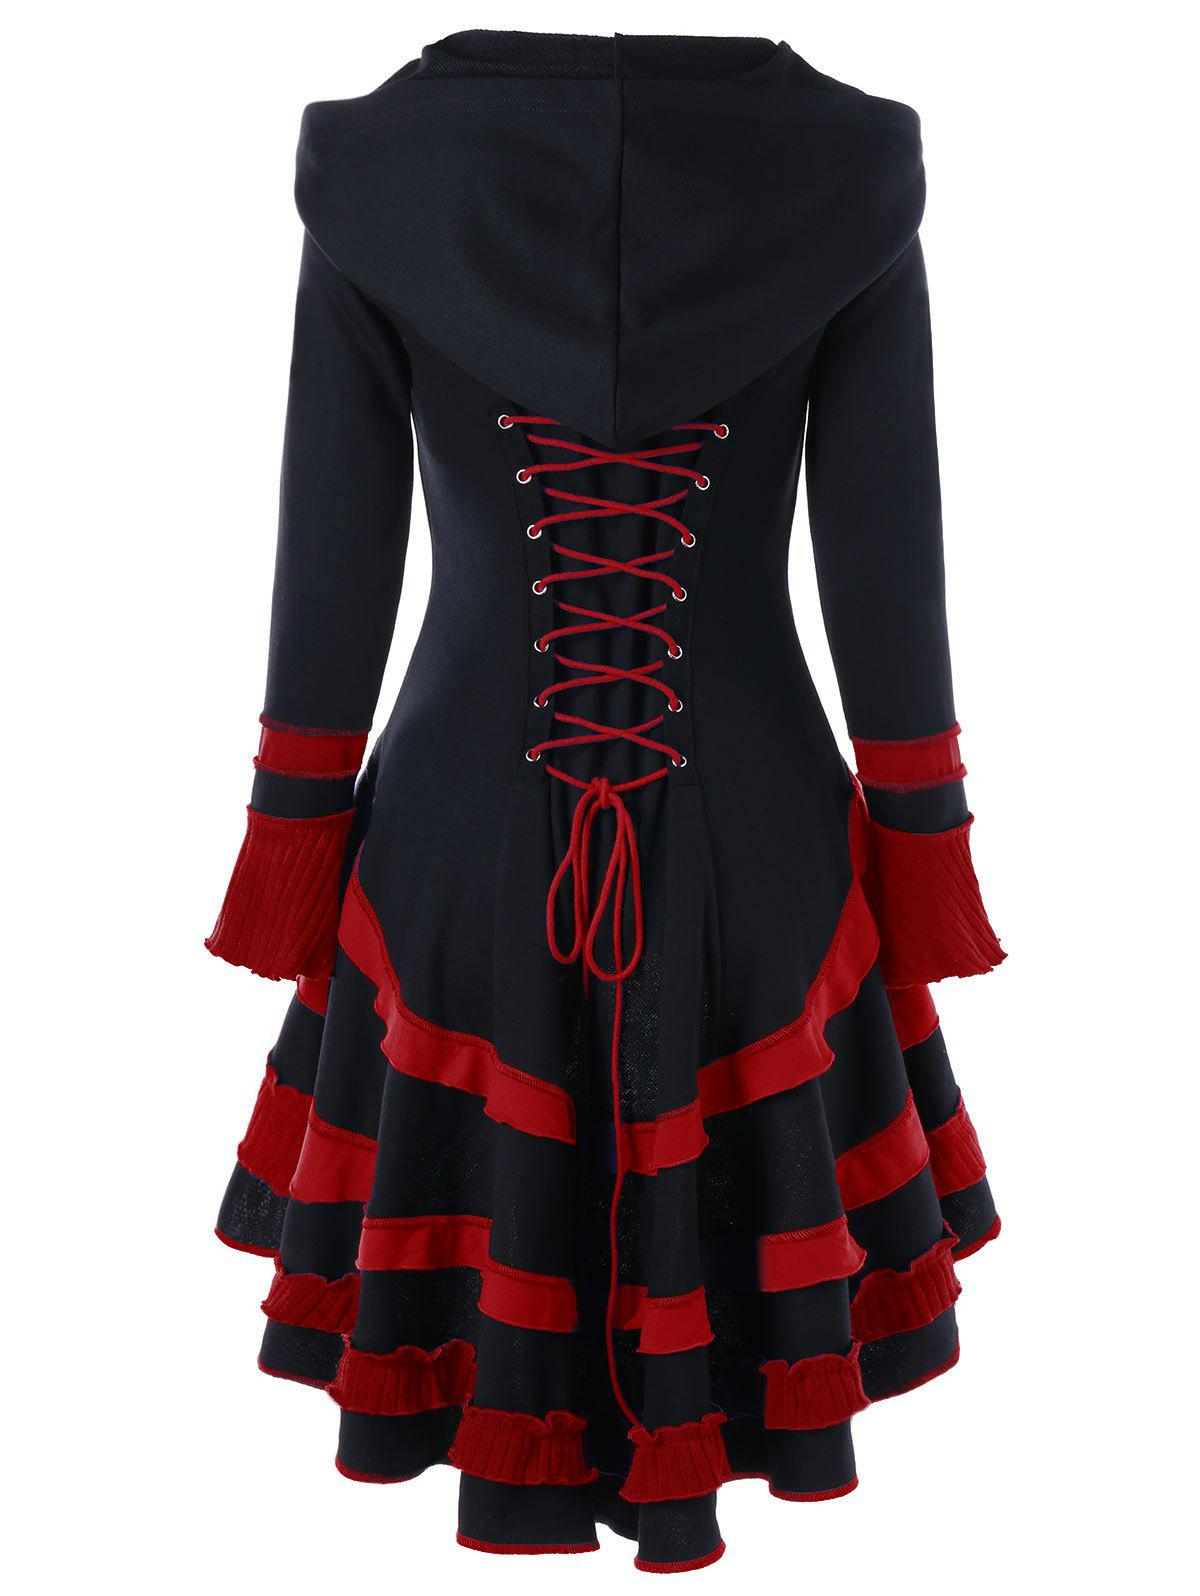 Lace-up High Low Buckle Duffle Coat, Black and red